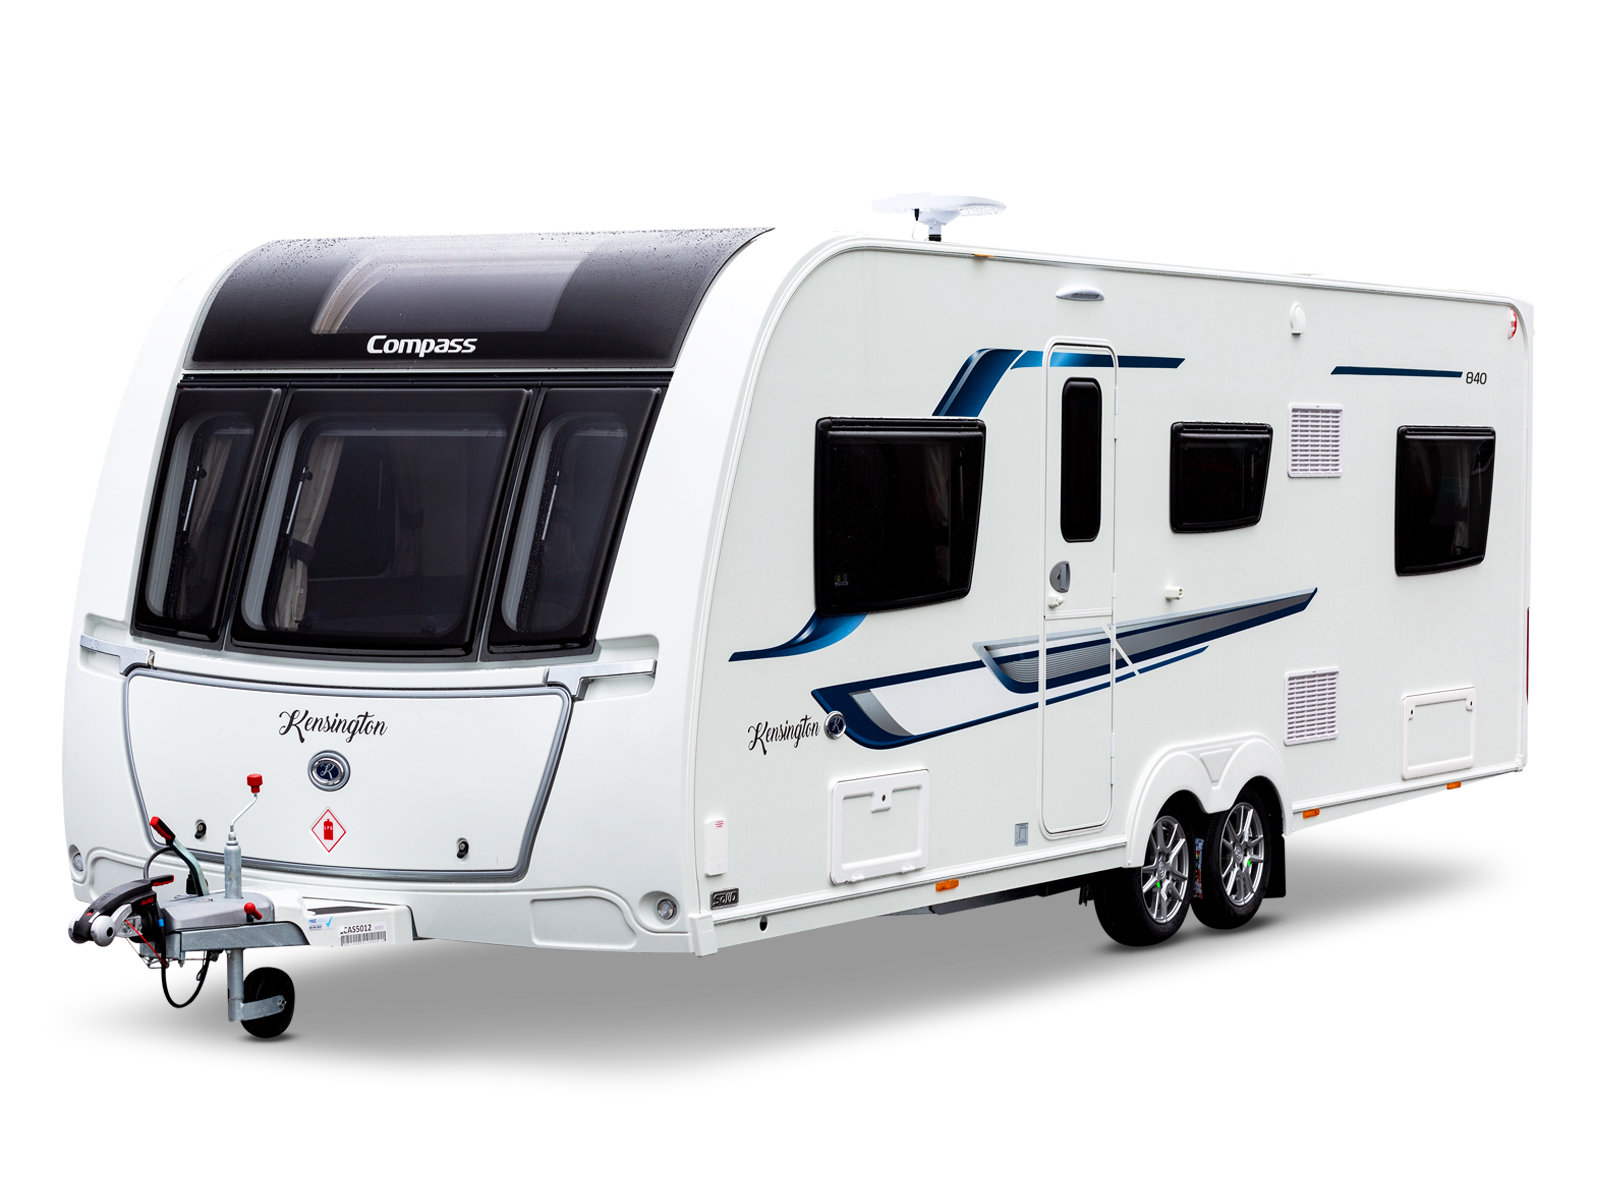 Kensington Caravan by Compass Exterior